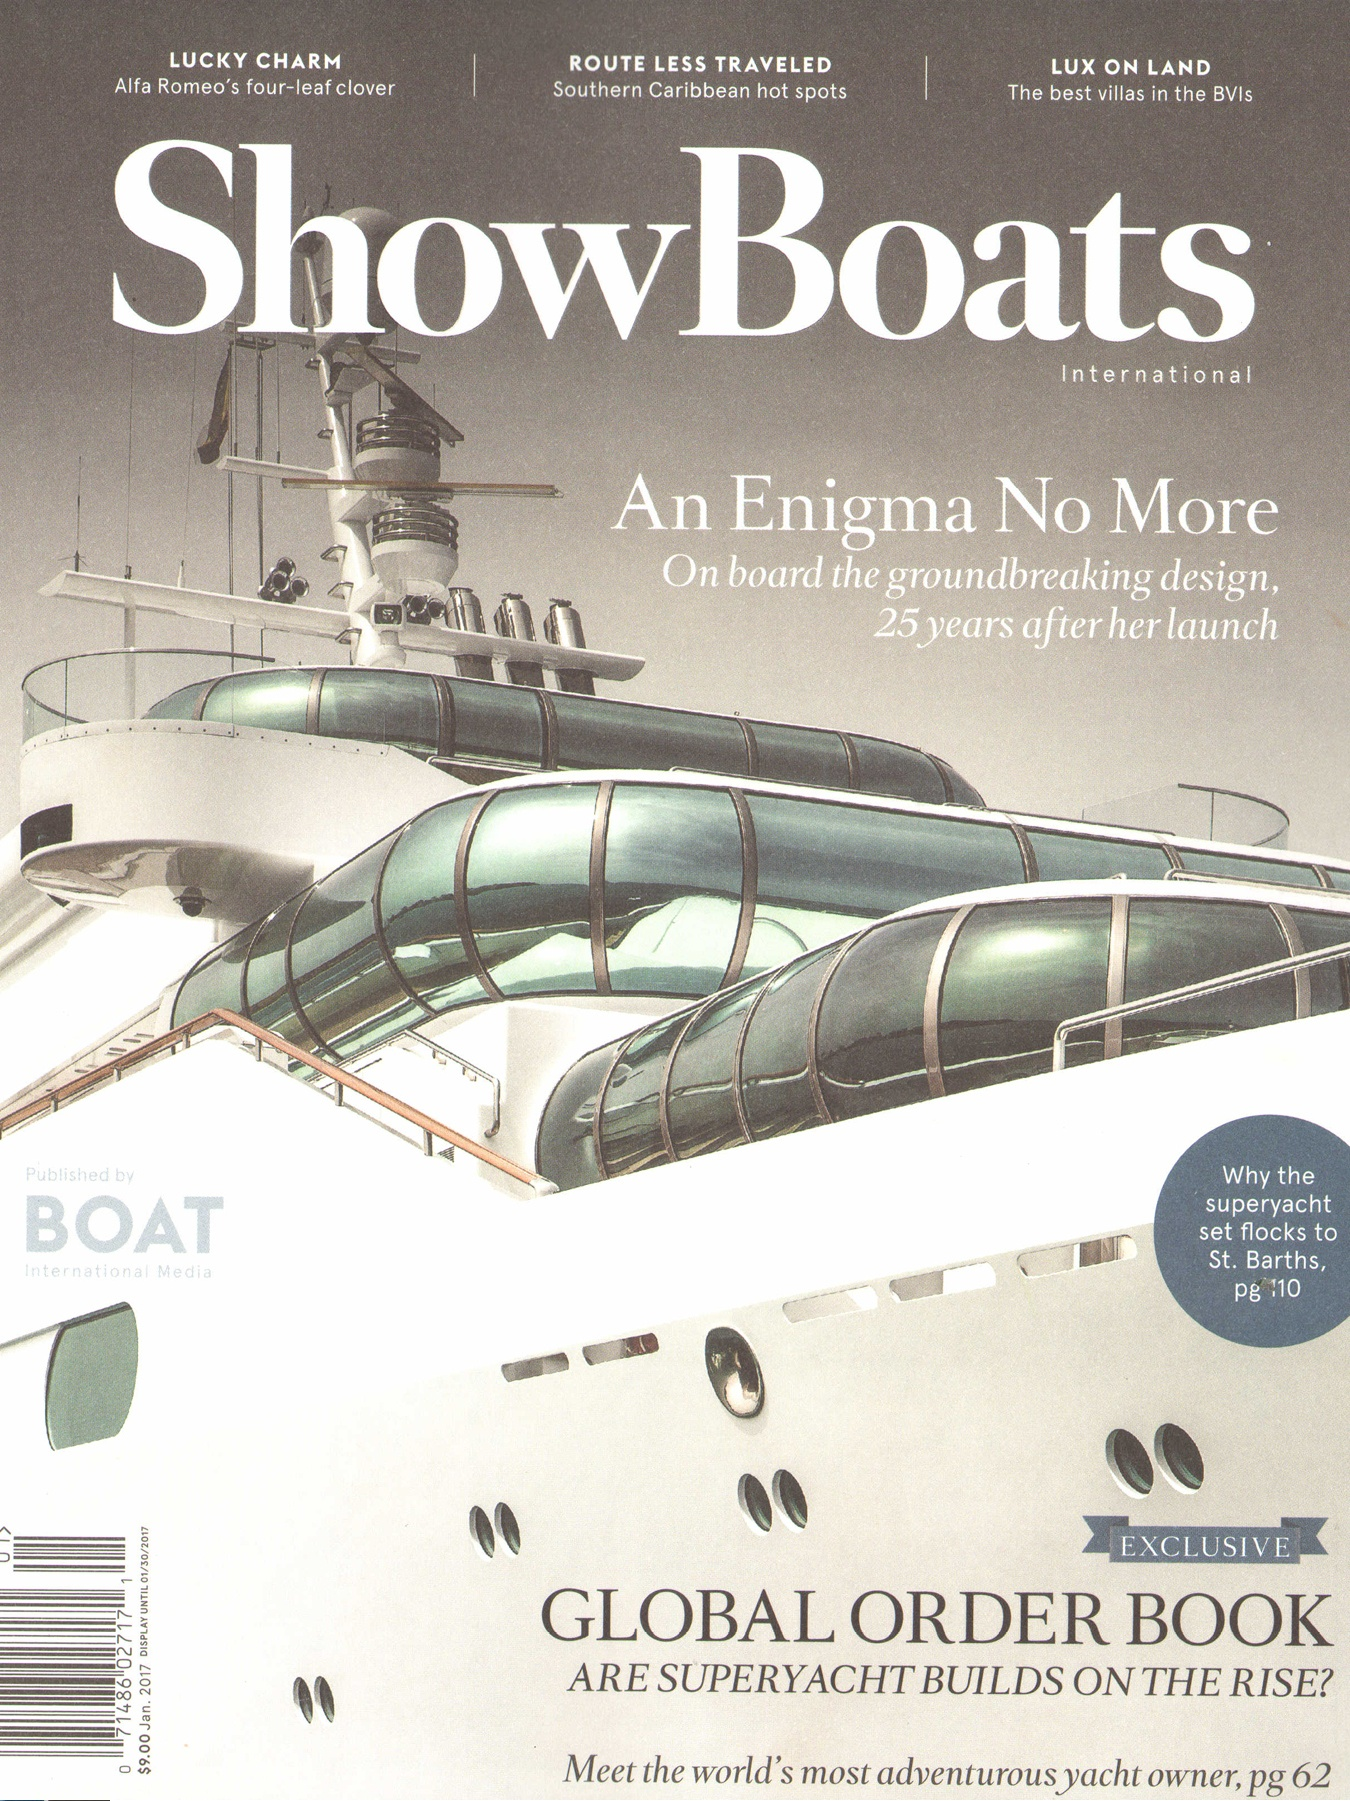 Showboats International Jan 2017 Front Cover_2.jpg